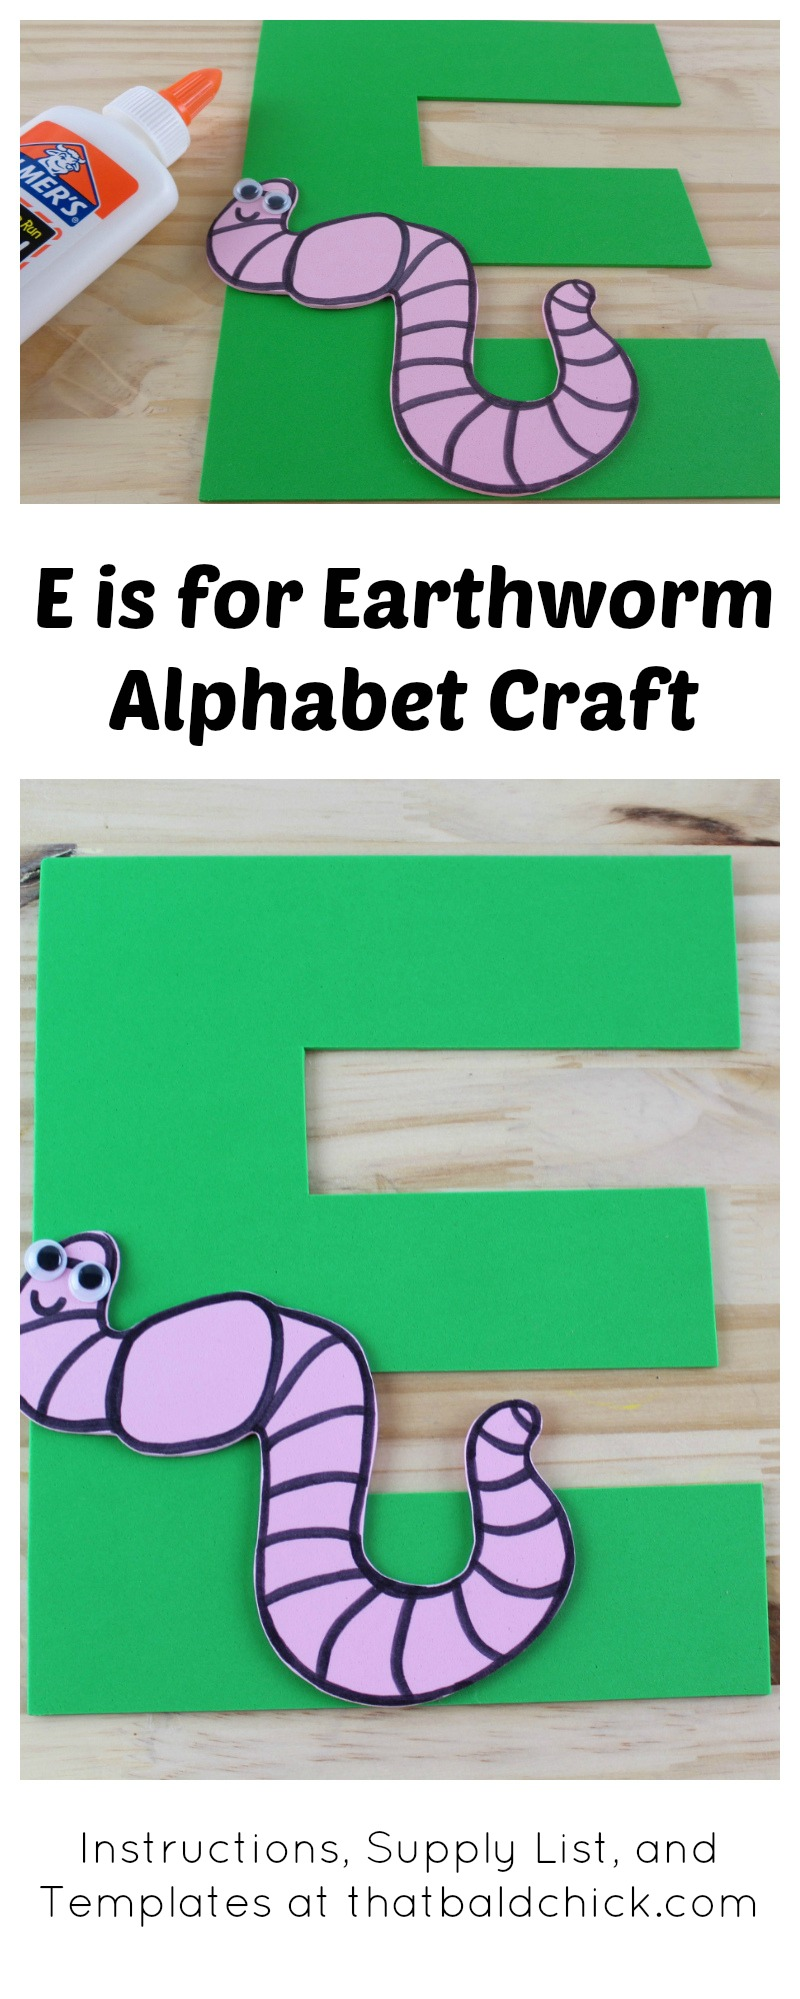 E is for Earthworm Alphabet Craft - instructions, supply list, and templates at thatbaldchick.com